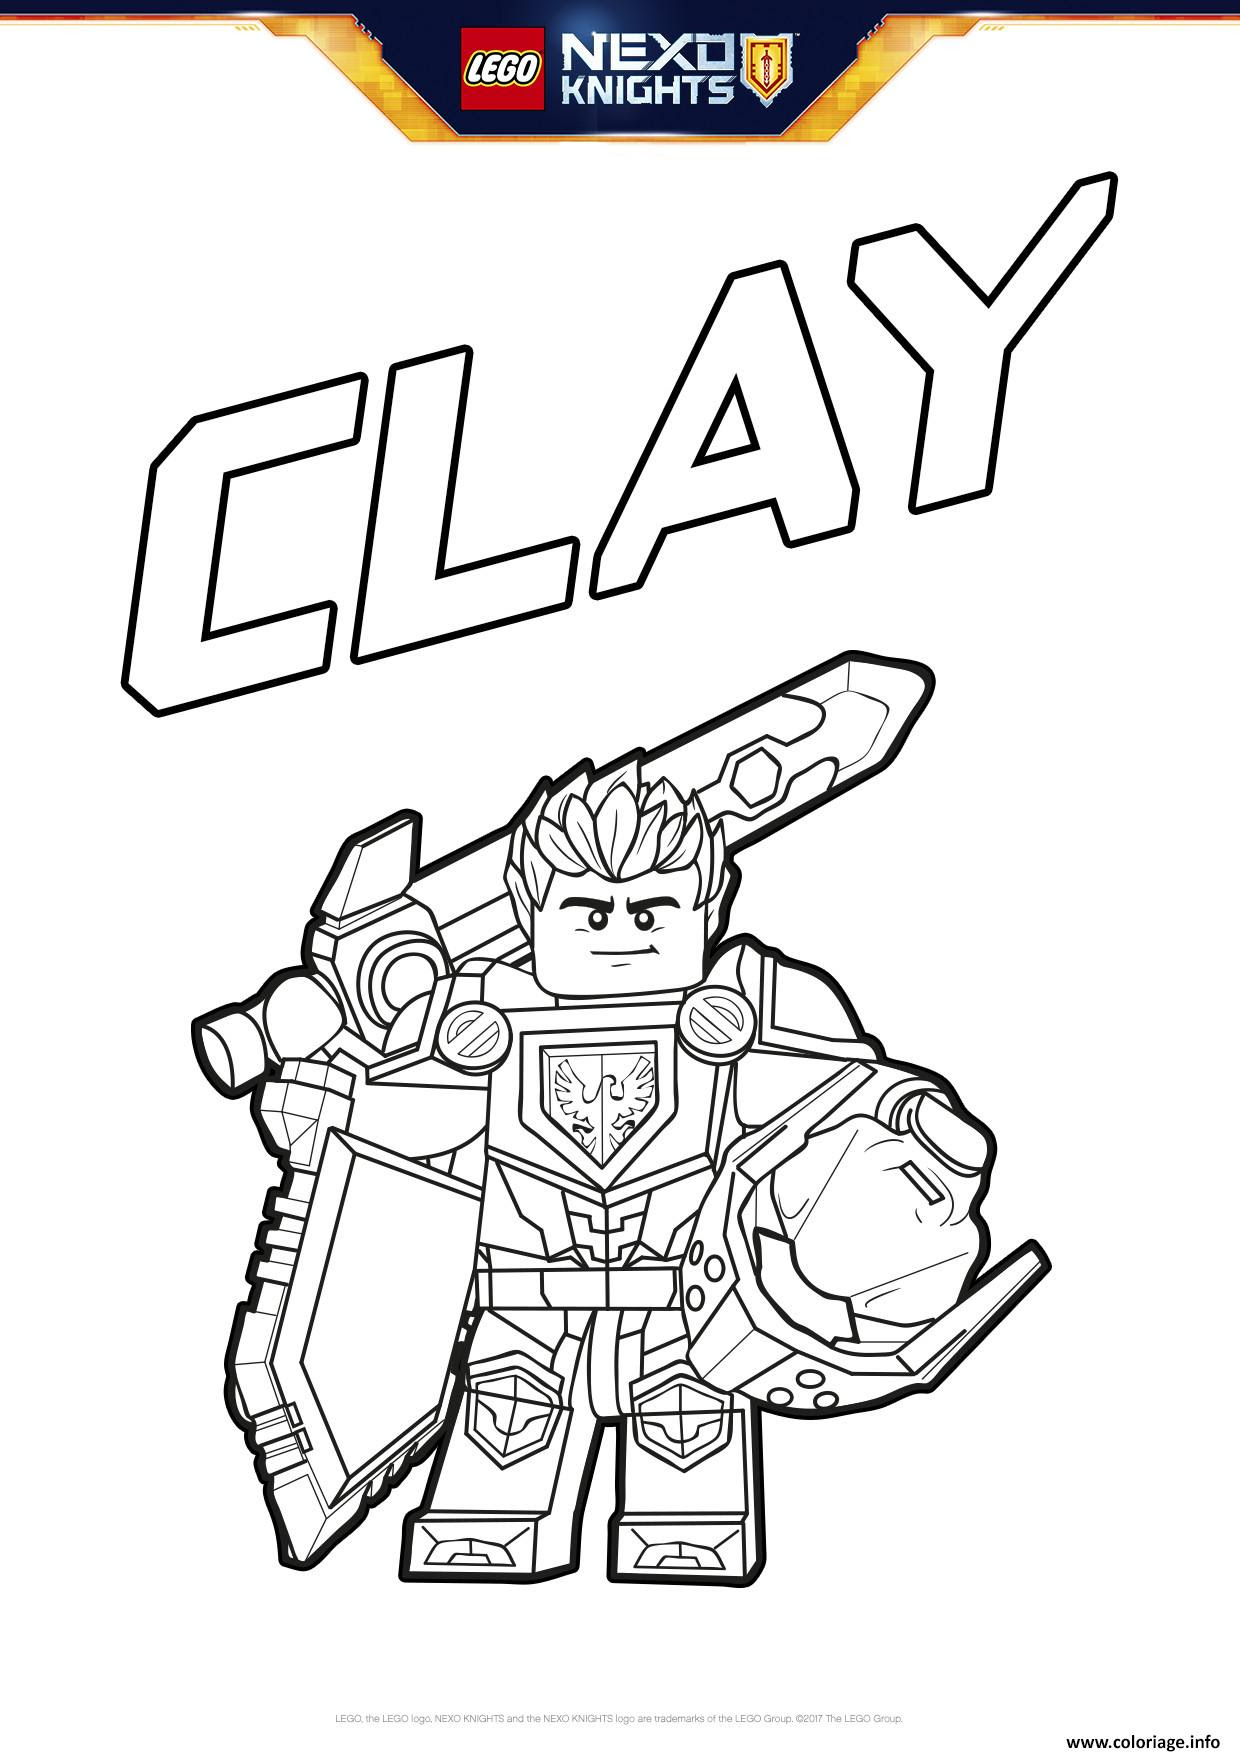 Coloriage Lego Nexo Knights Bouclier Clay Jecoloriecom